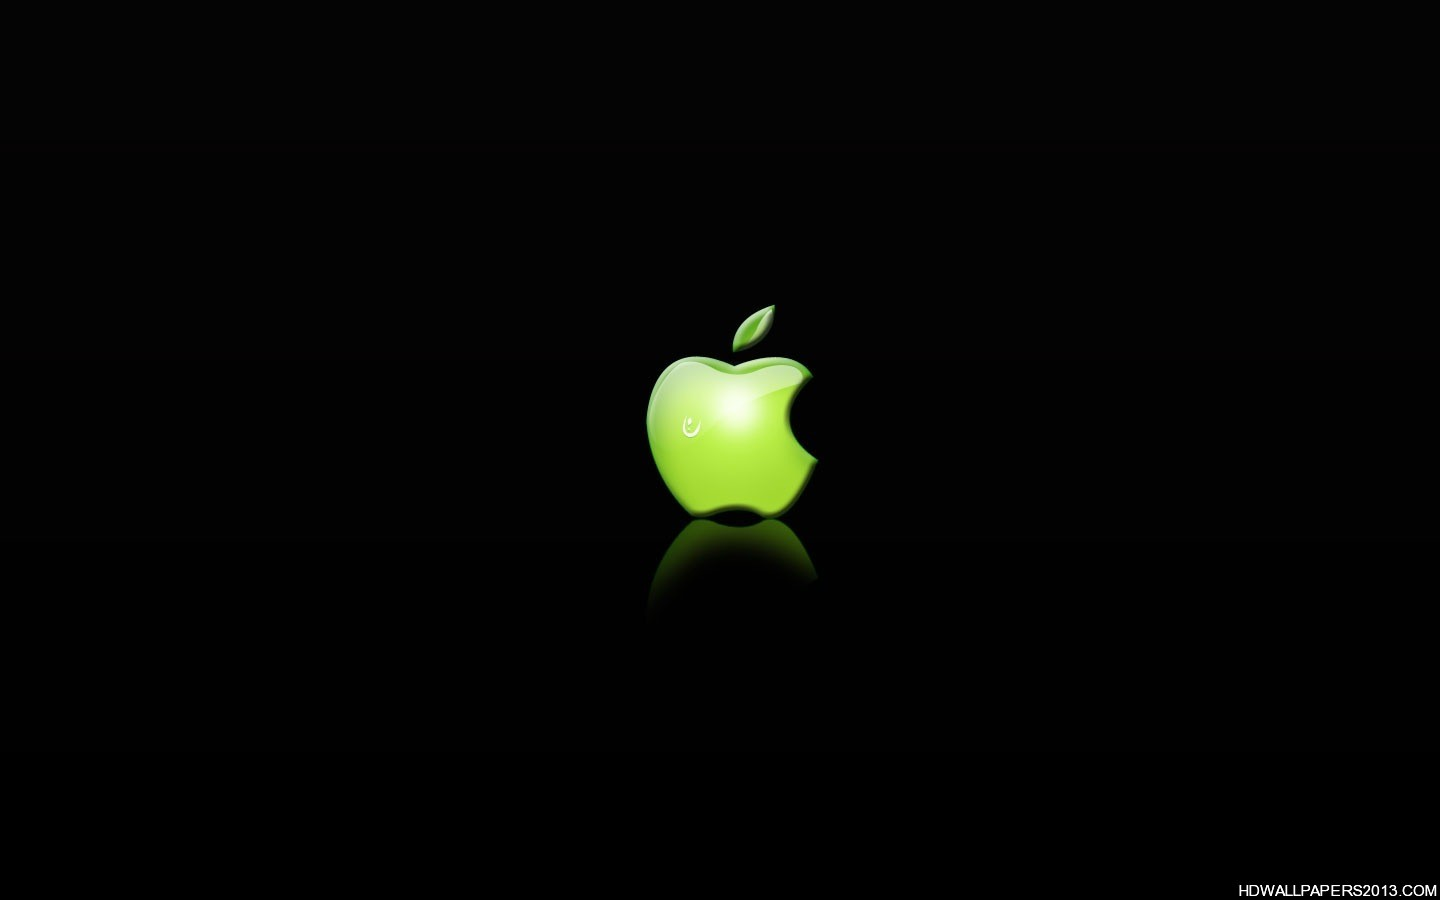 hd wallpapers apple free images gallery